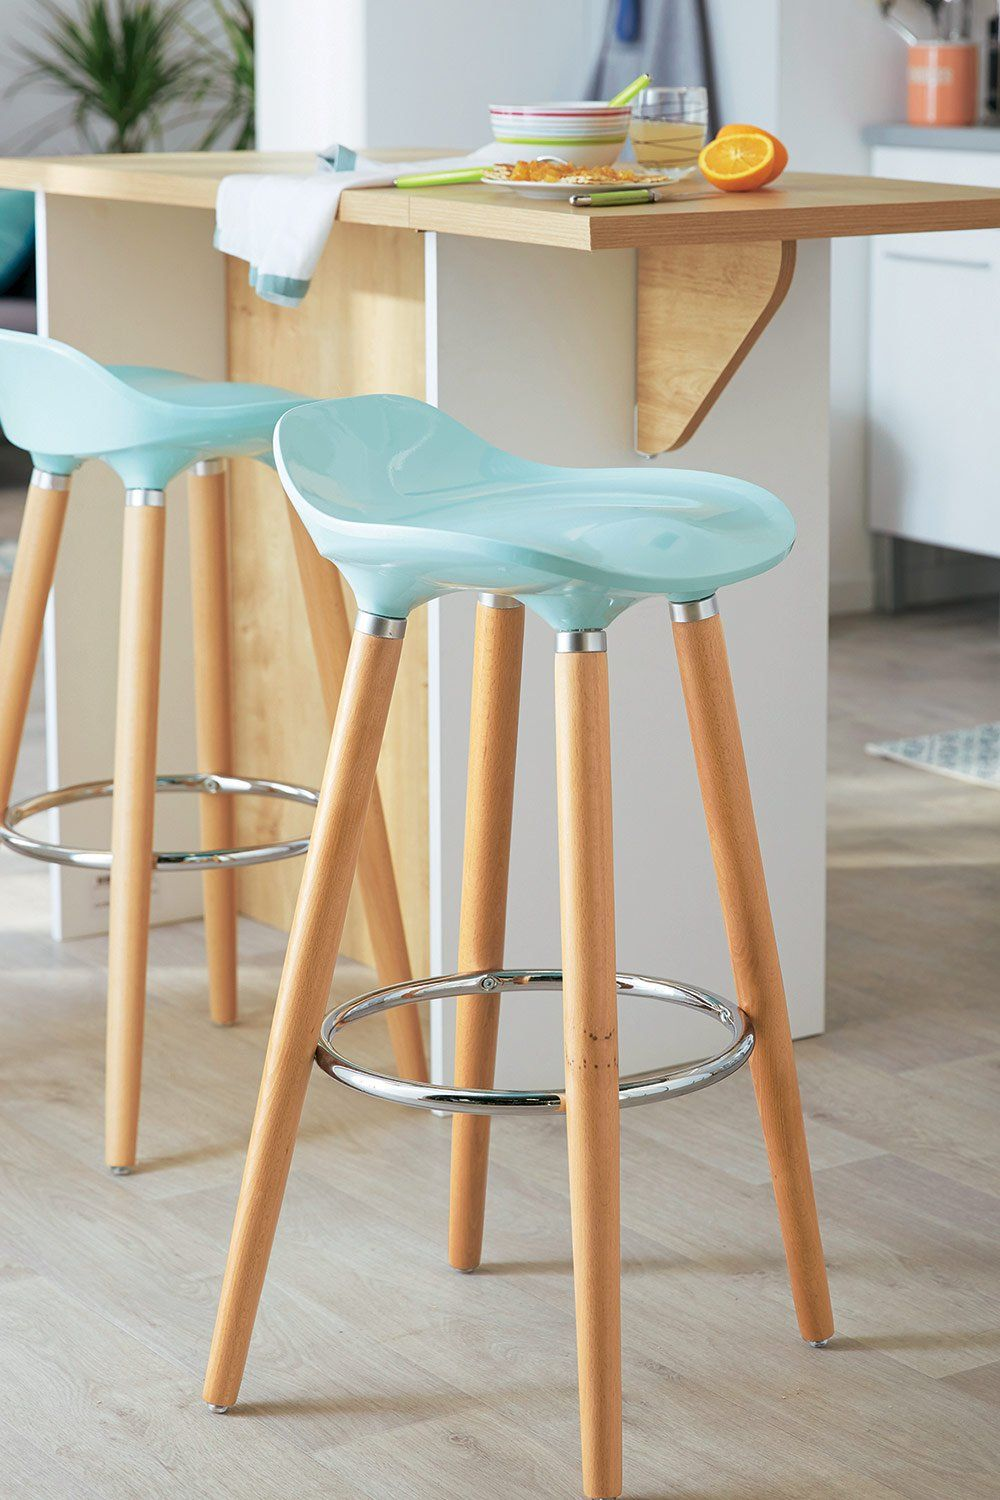 Une Chaise De Bar Vert D Eau Alinea Home Furnishings Bar